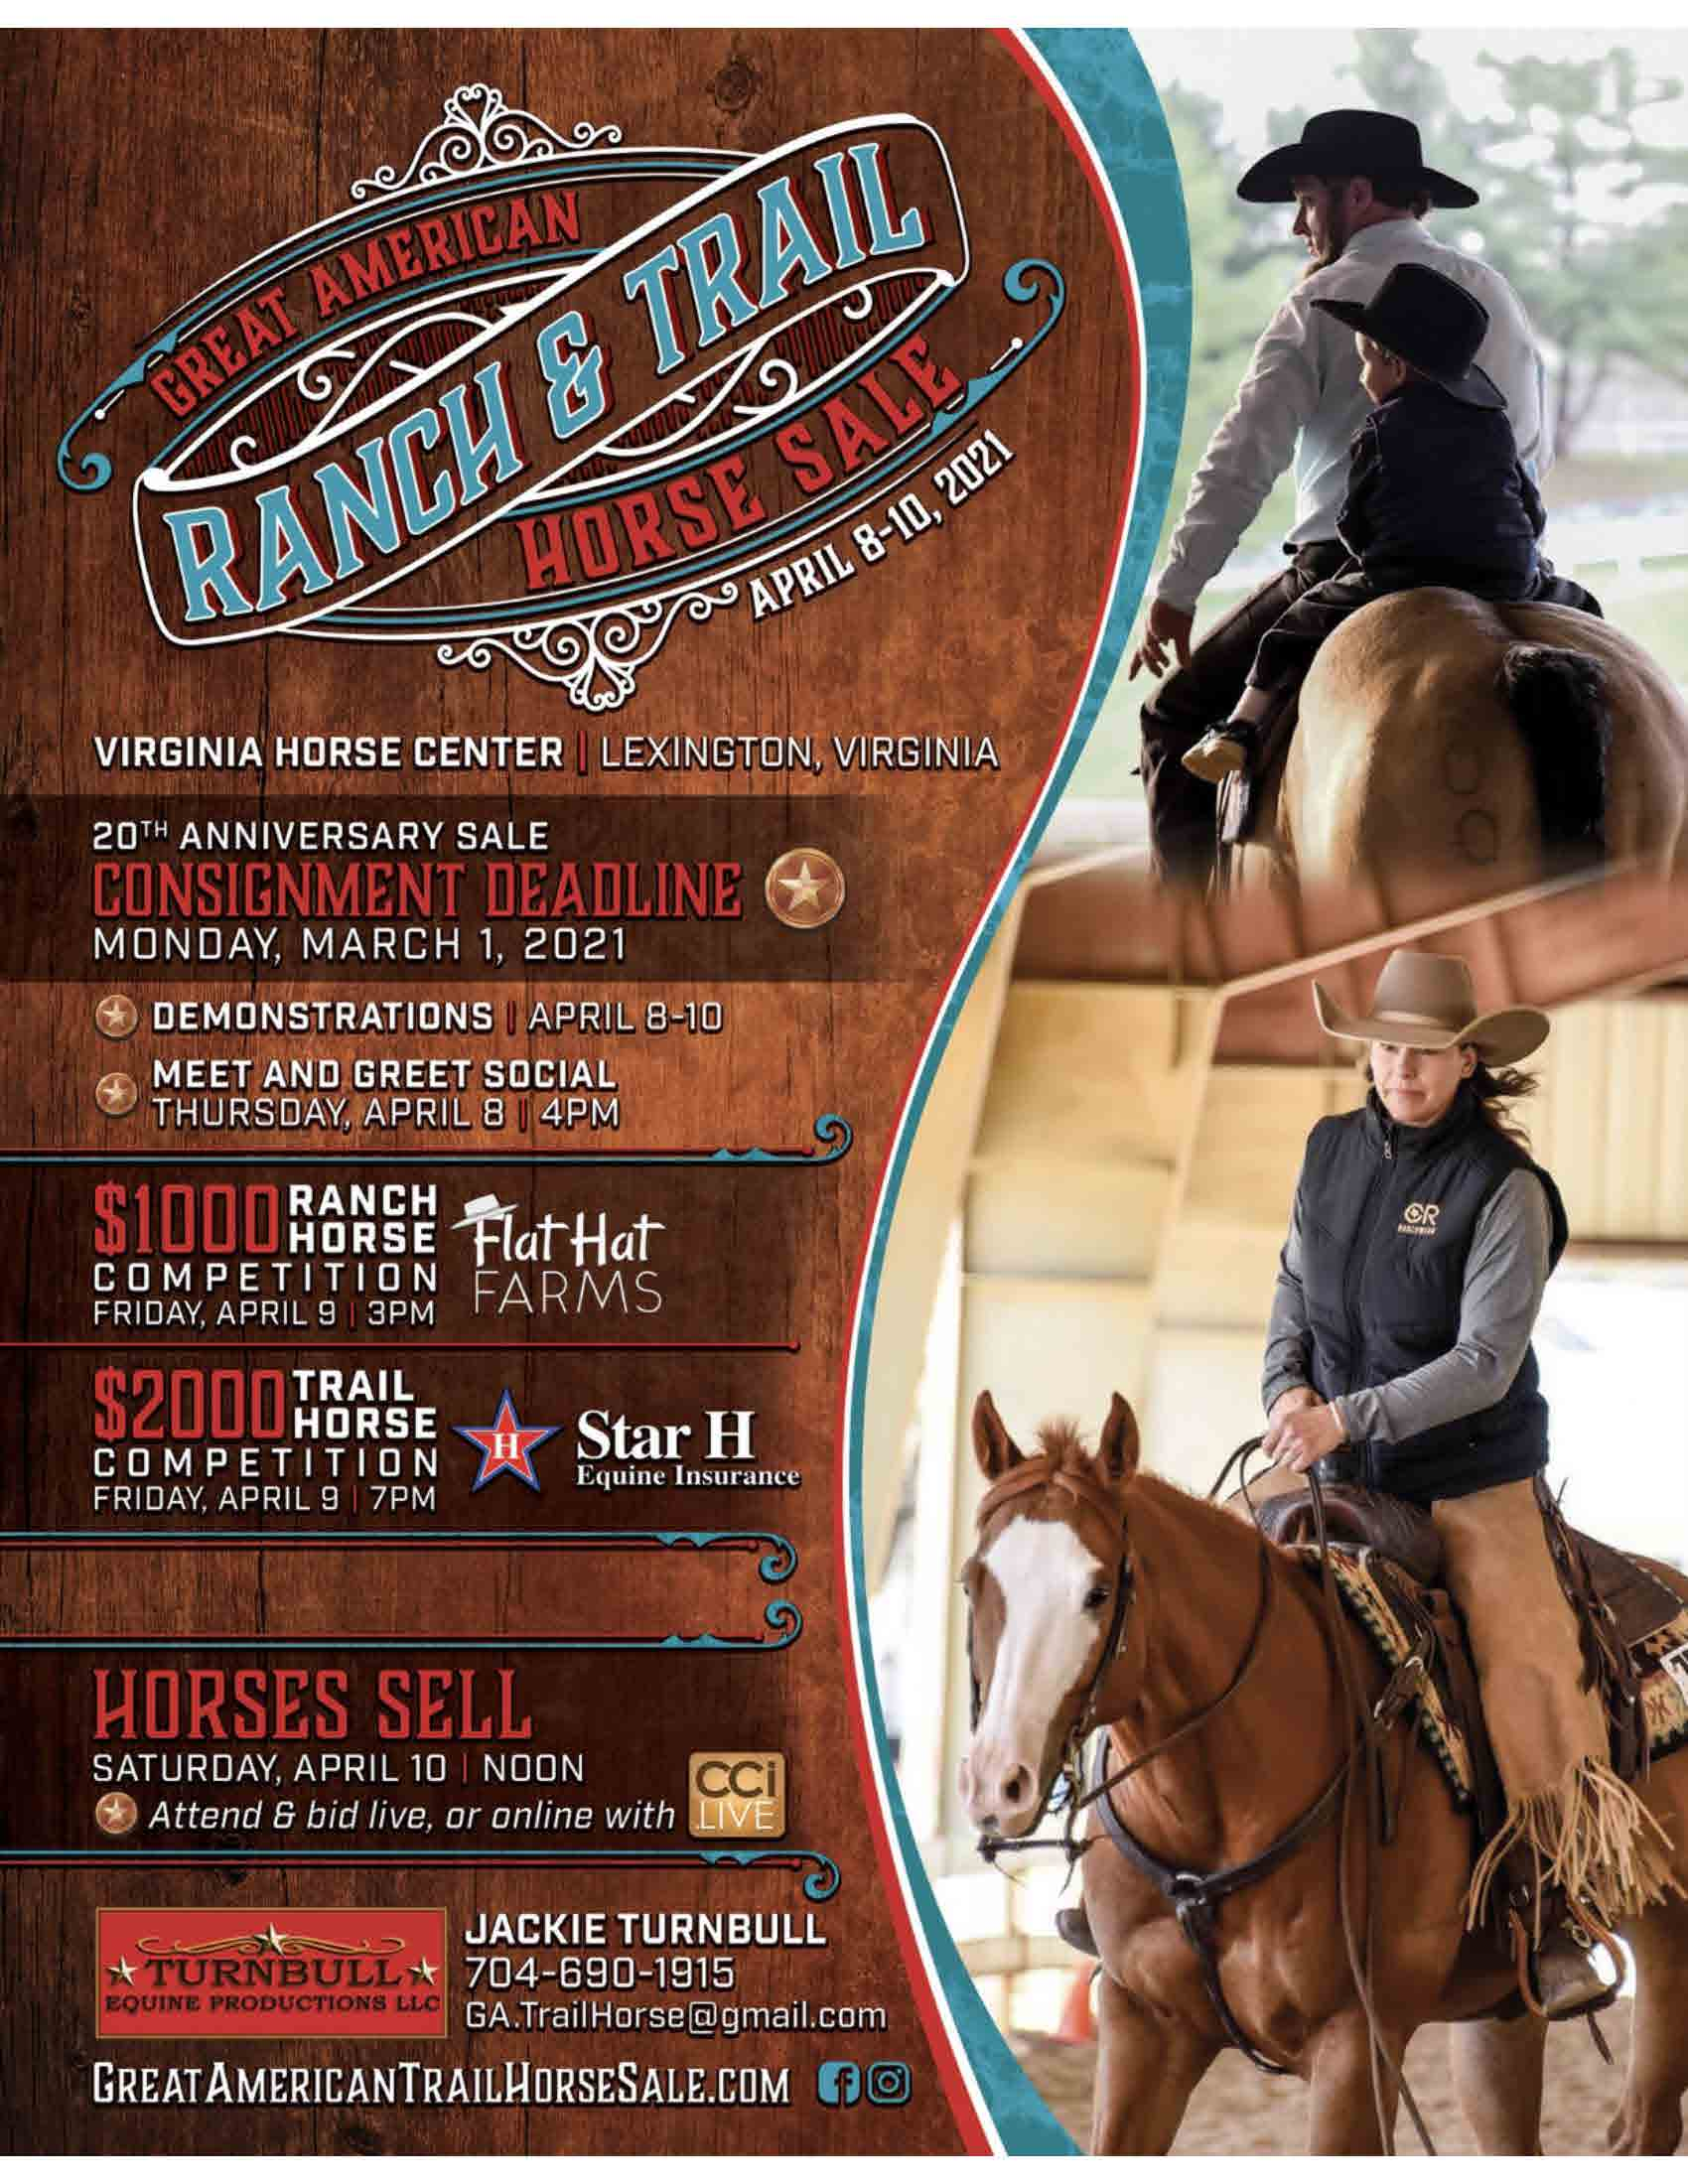 Great American Ranch and Trail Horse Sale 2021 photo